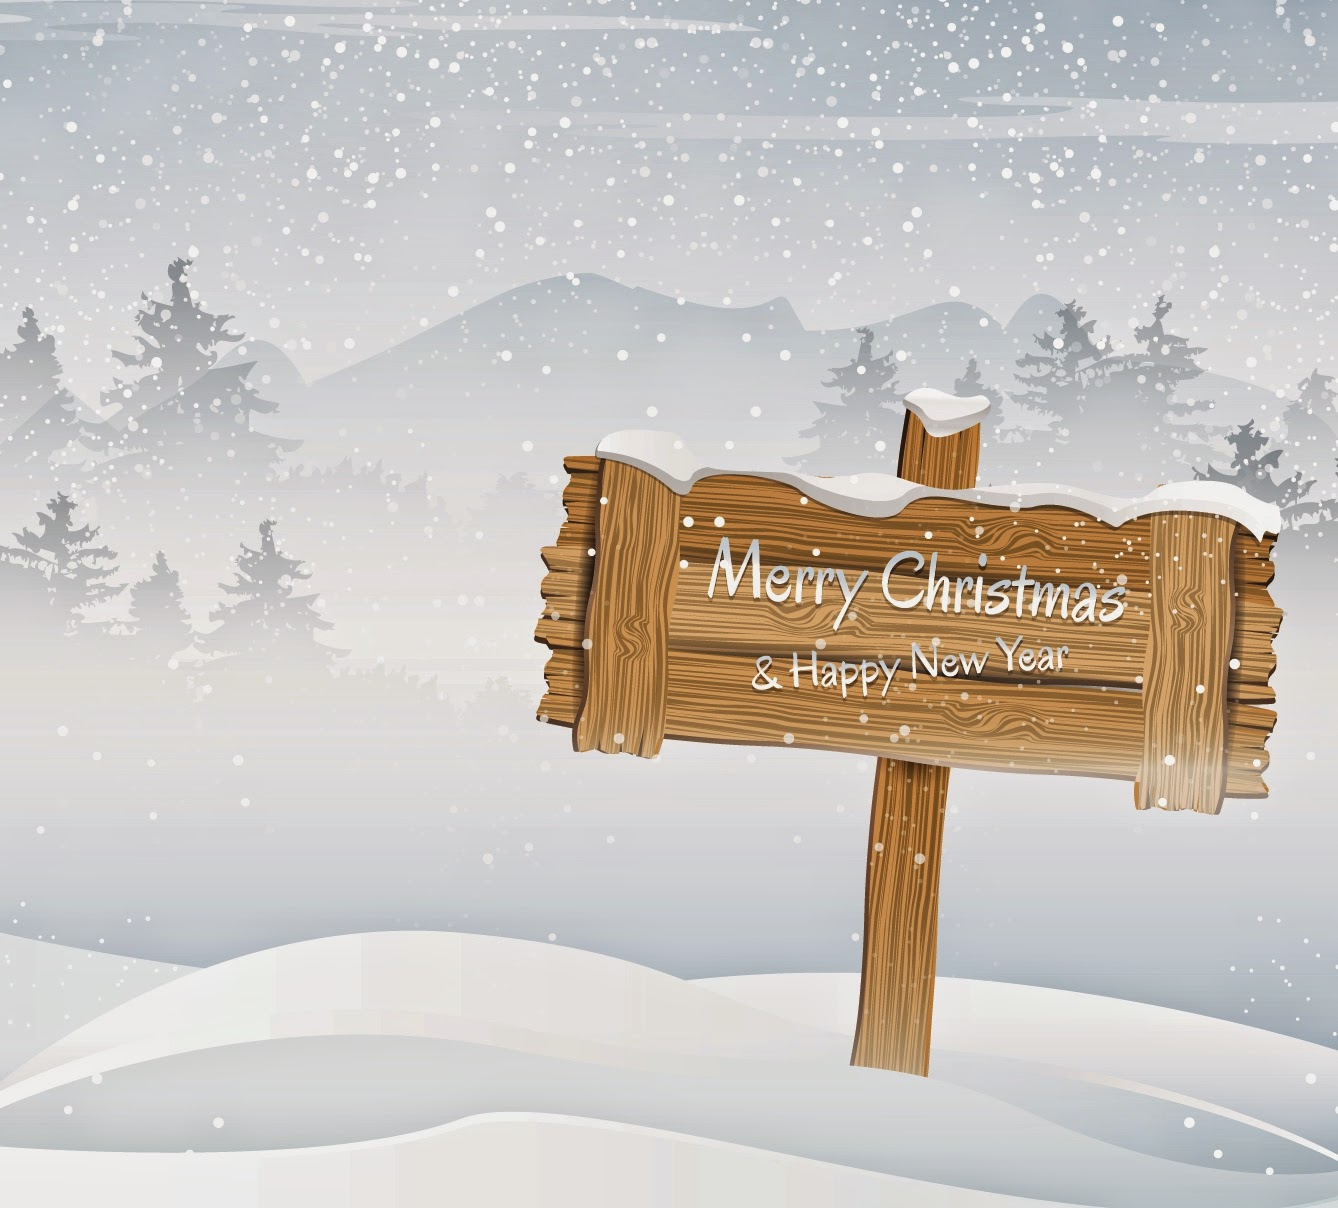 Merry-Christmas-and-happy-new-year-wooden-board-in-snow-vector-image-picture.jpg